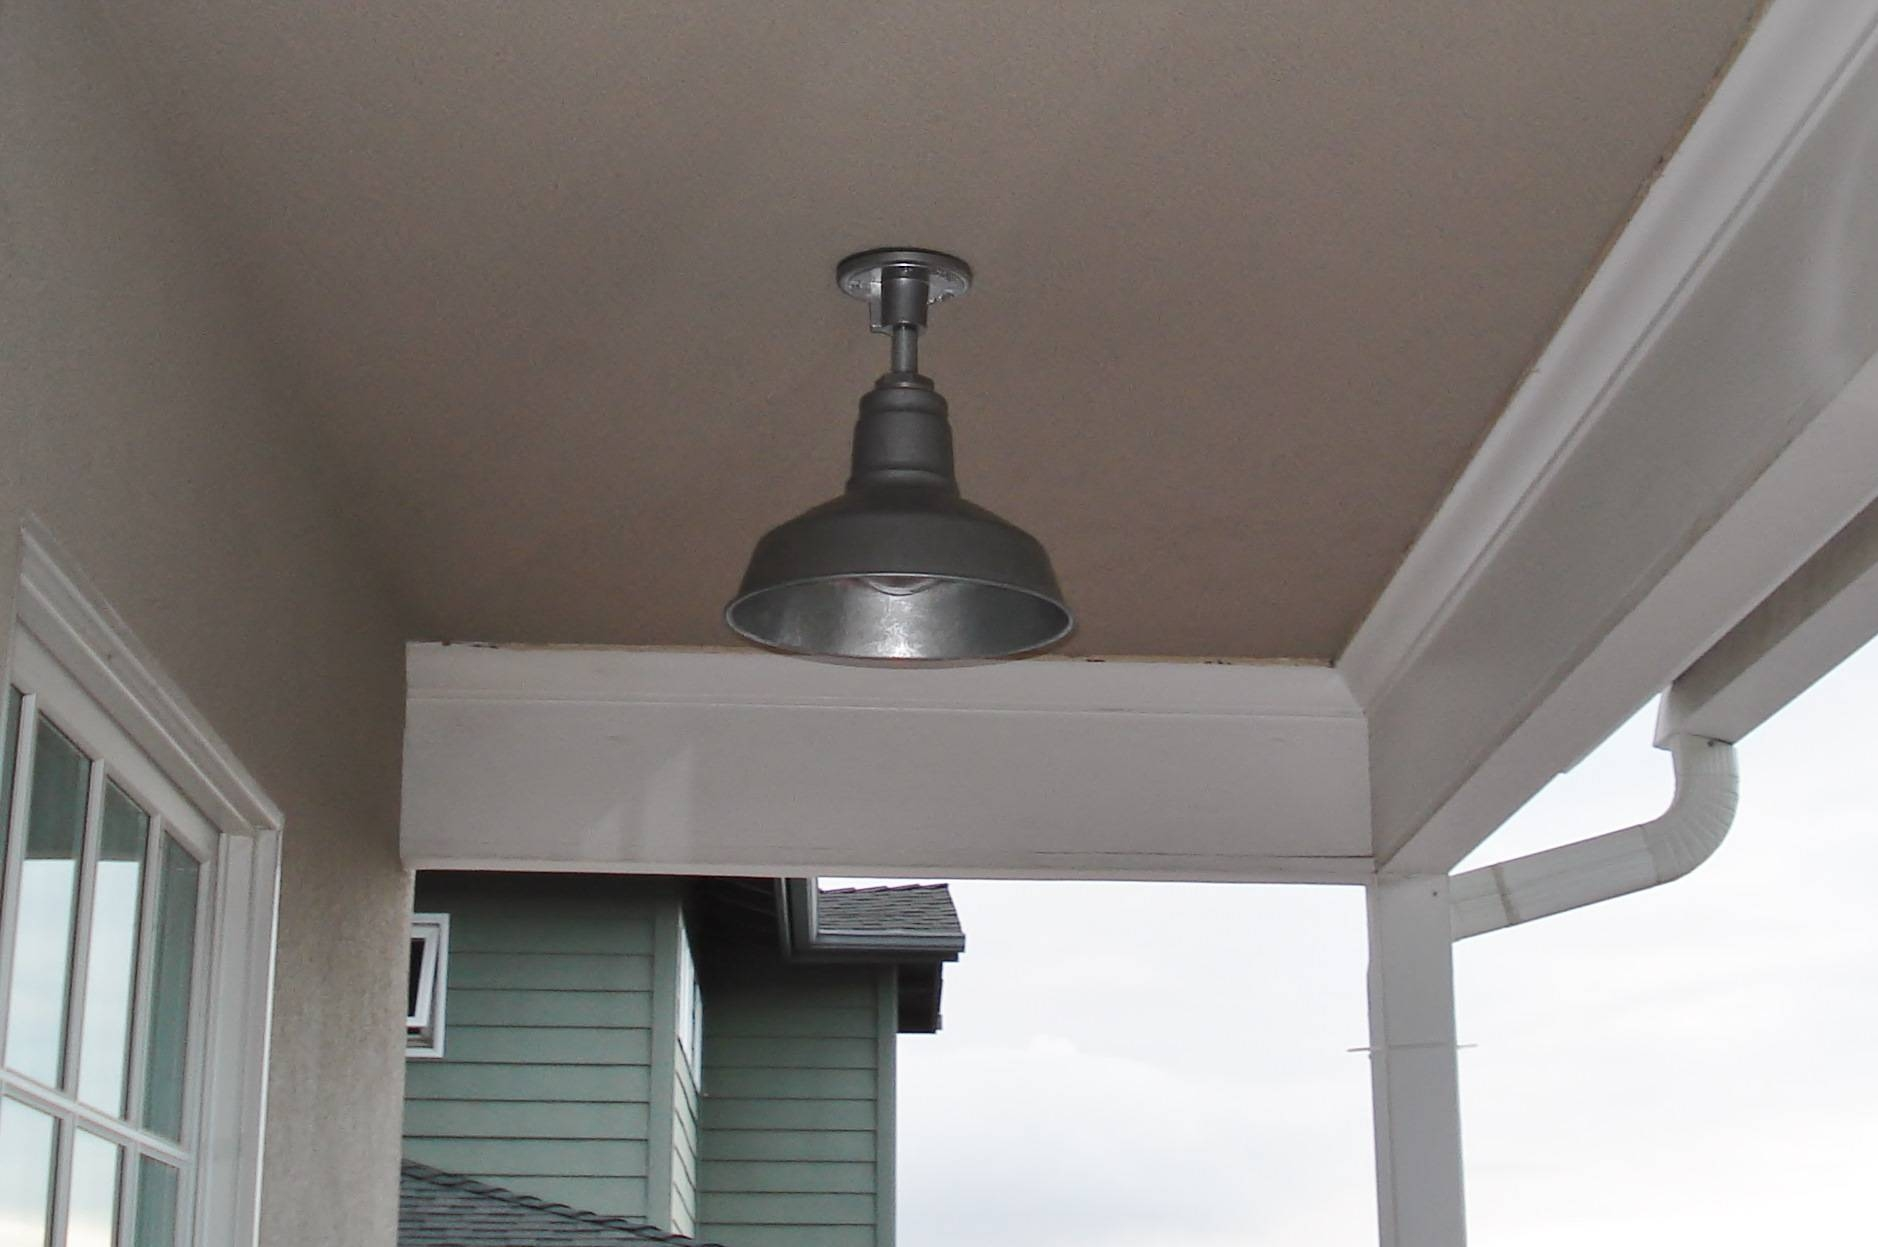 Exterior Lighting Gets Update With Sturdy Stem Mount Pendant For Galvanized Pendant Barn Lights (View 7 of 15)